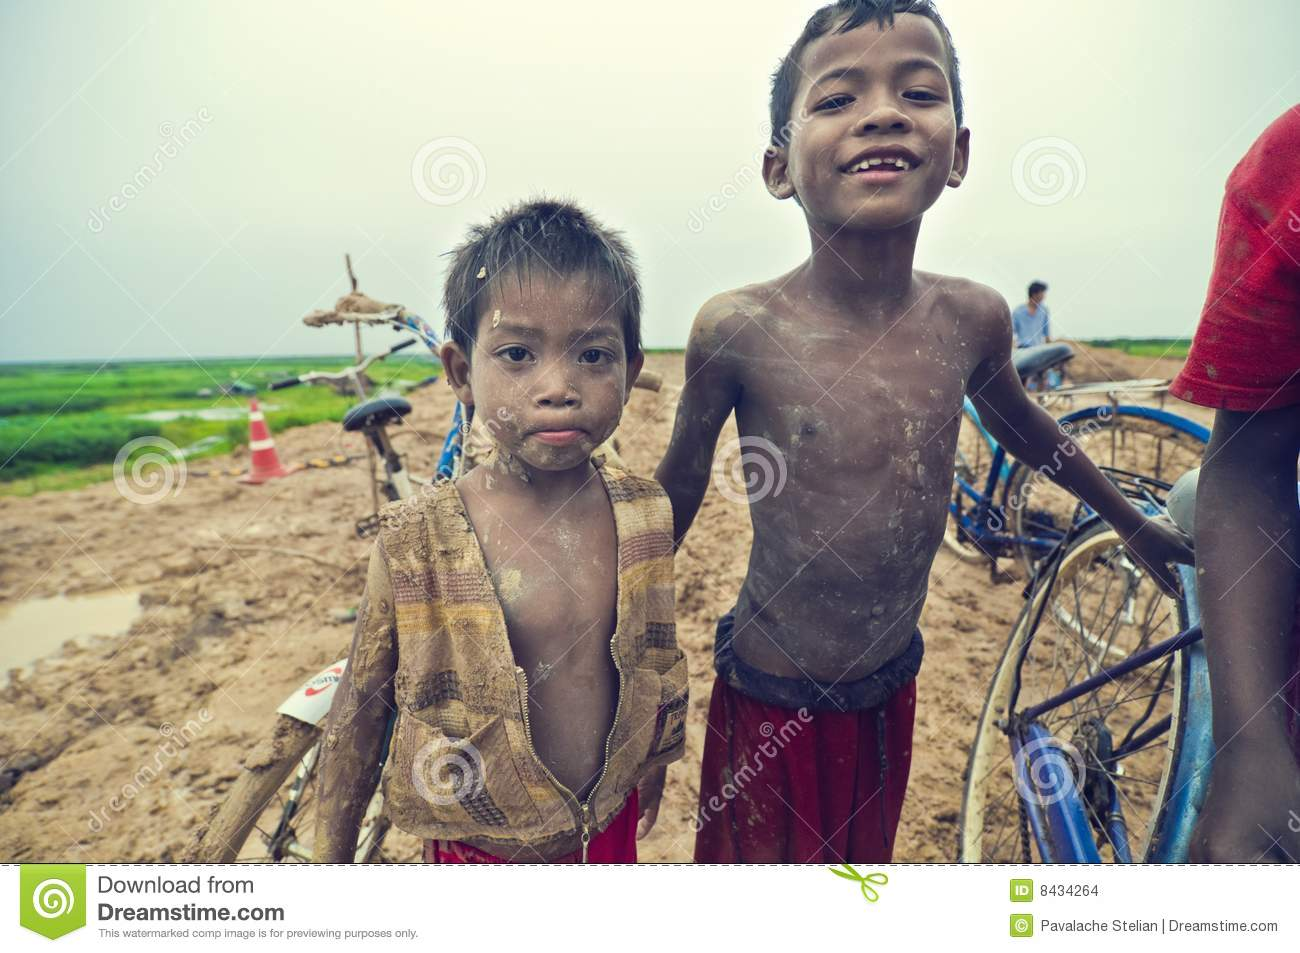 Poor cambodian kids playing with bicycle